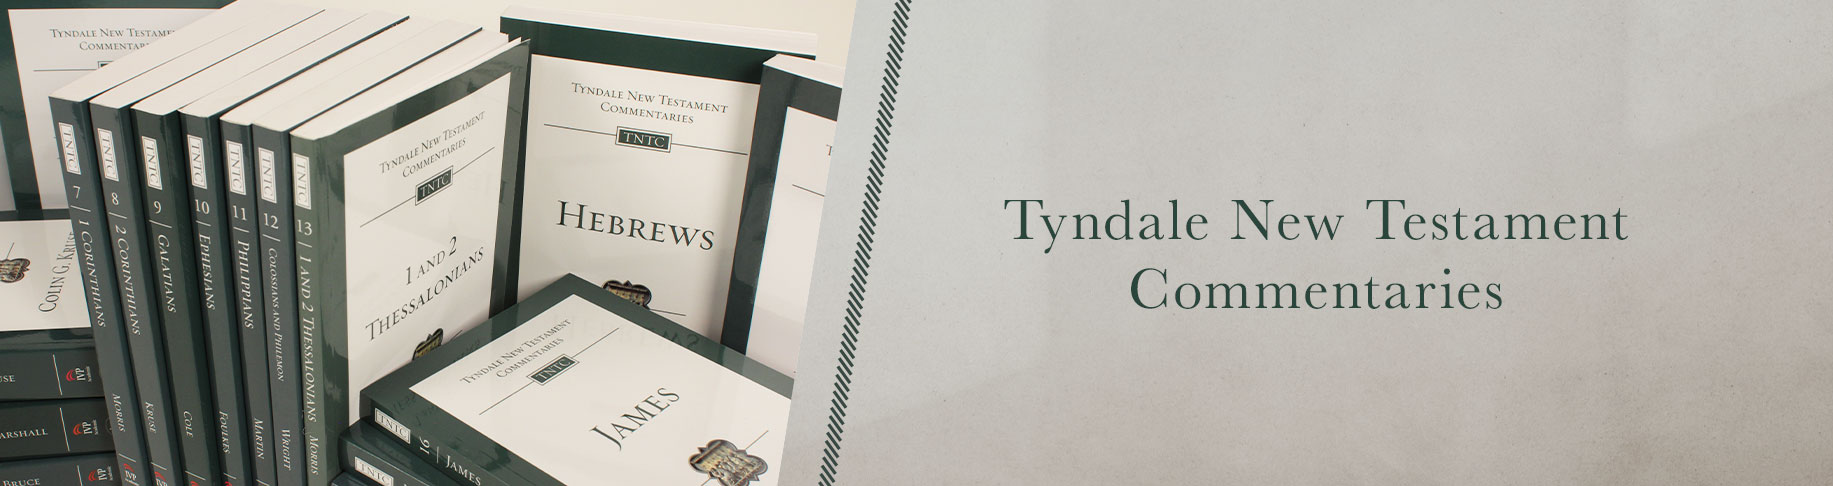 Tyndale New Testament Commentaries